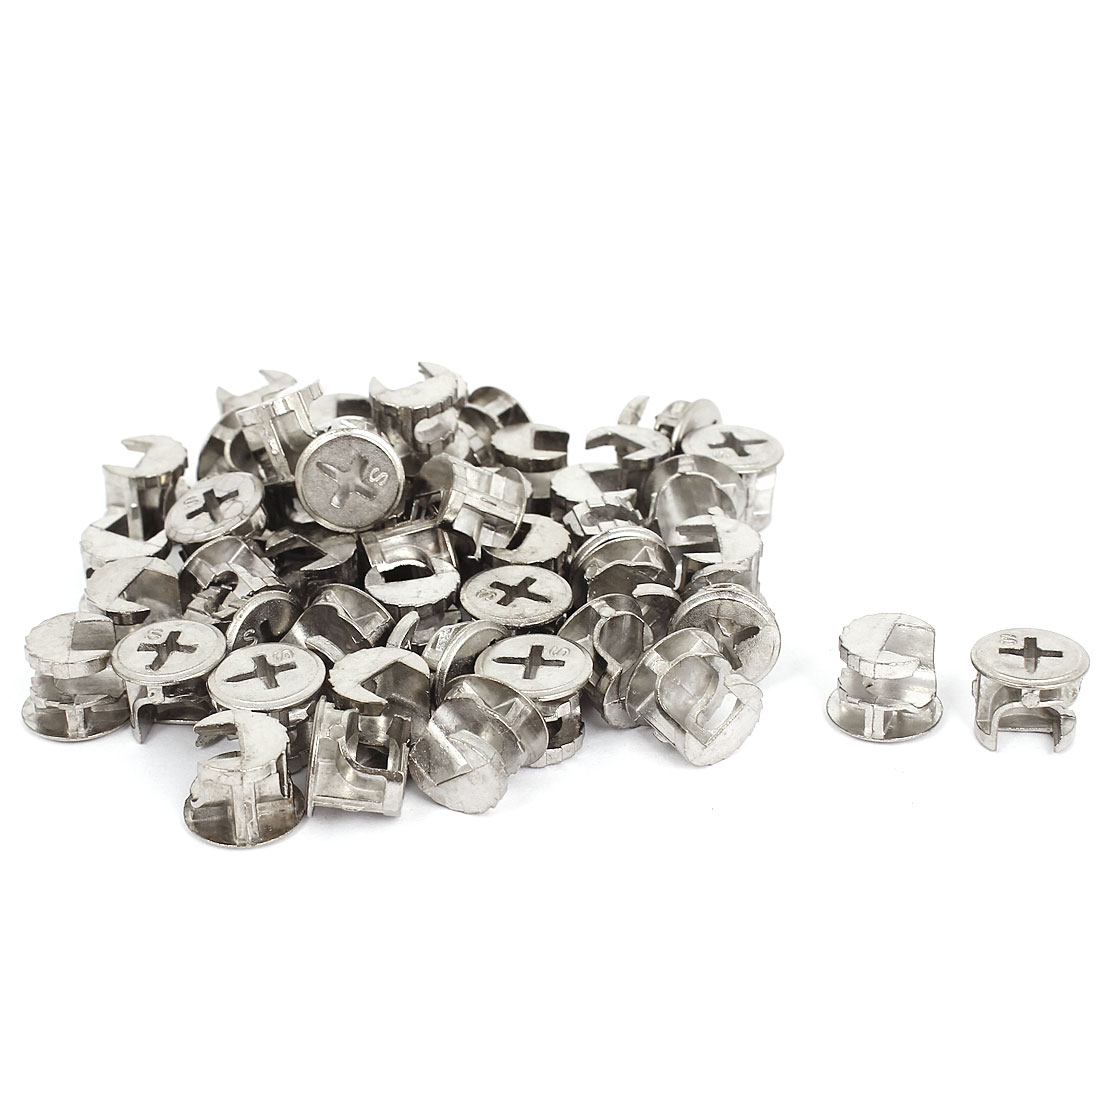 50 Pcs 13mmx11mm Connection Connector Eccentric Wheel Nuts Furniture Hardware